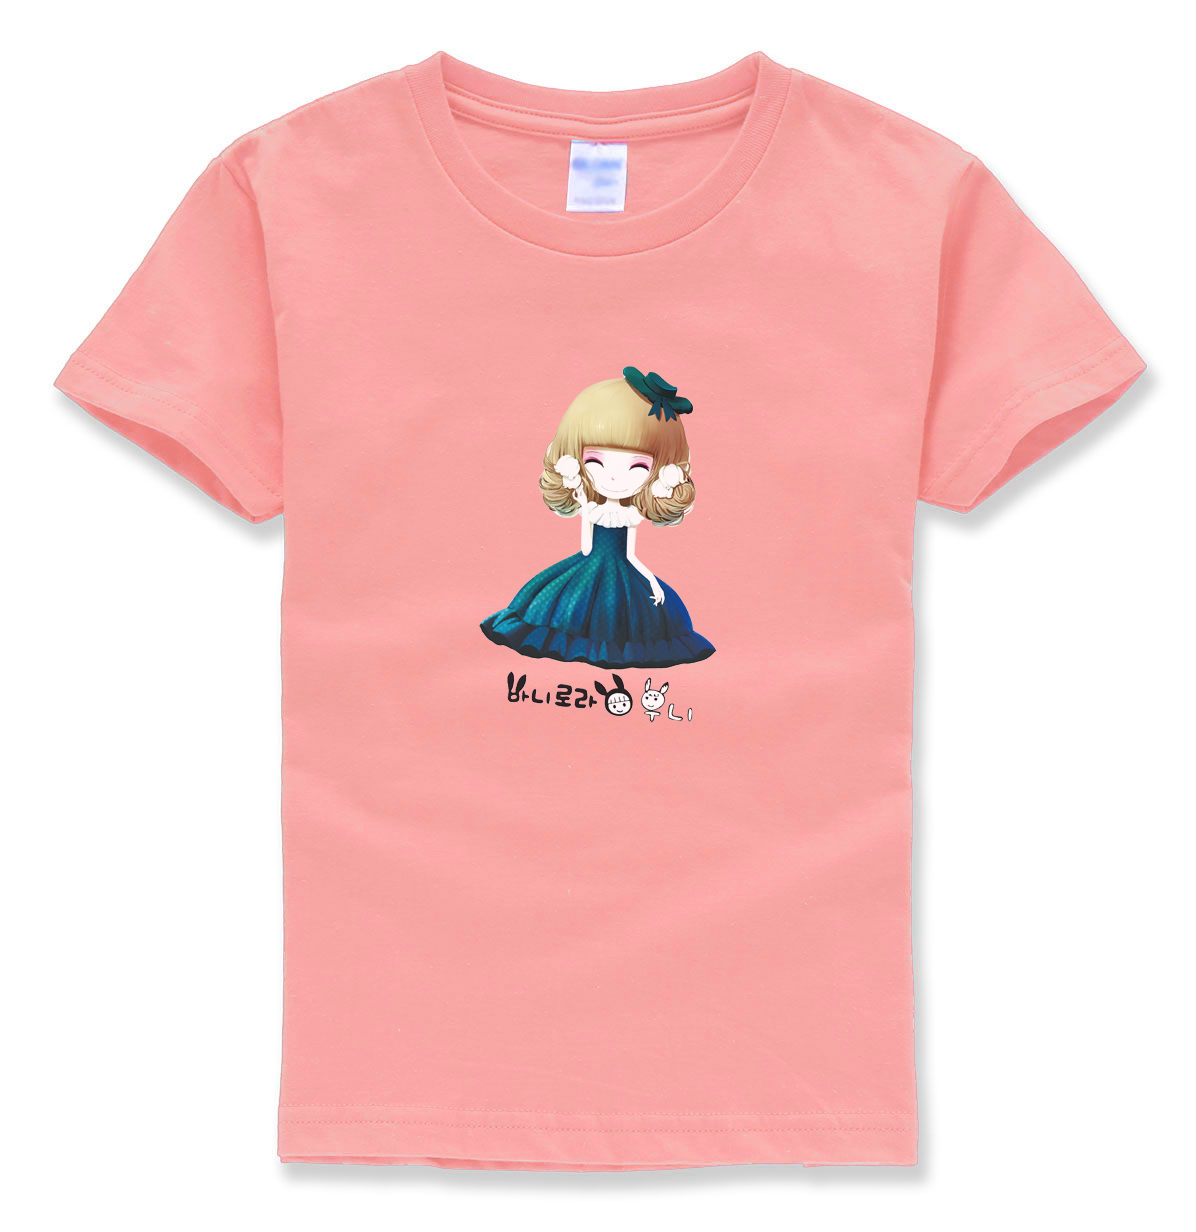 2017 summer girls tops t shirts brand cute kawaii streetwear homme kids shirts funny short sleeve o neck color children t-shirts